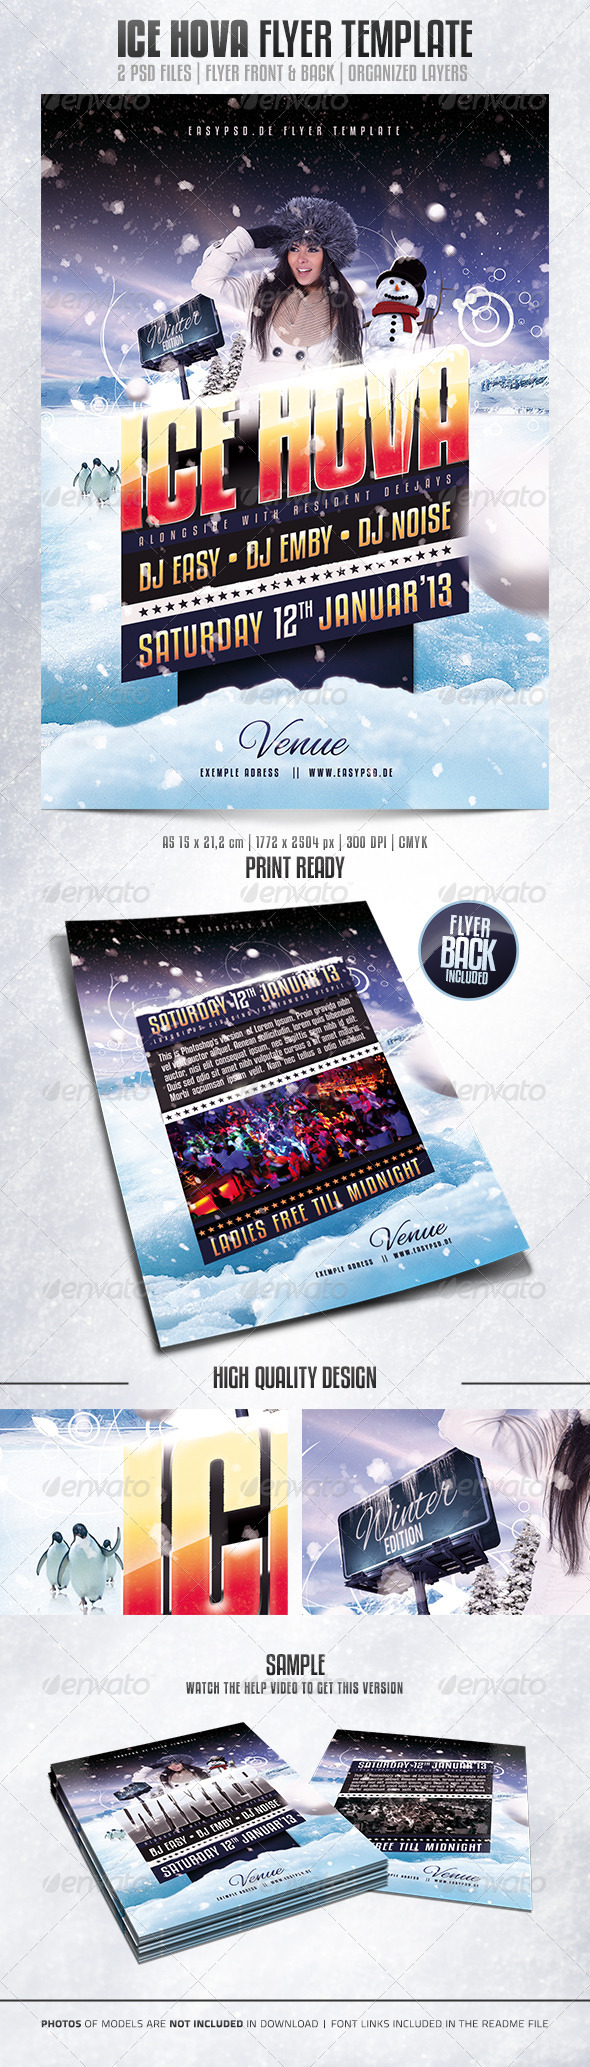 Ice Hova Flyer Template - Clubs & Parties Events